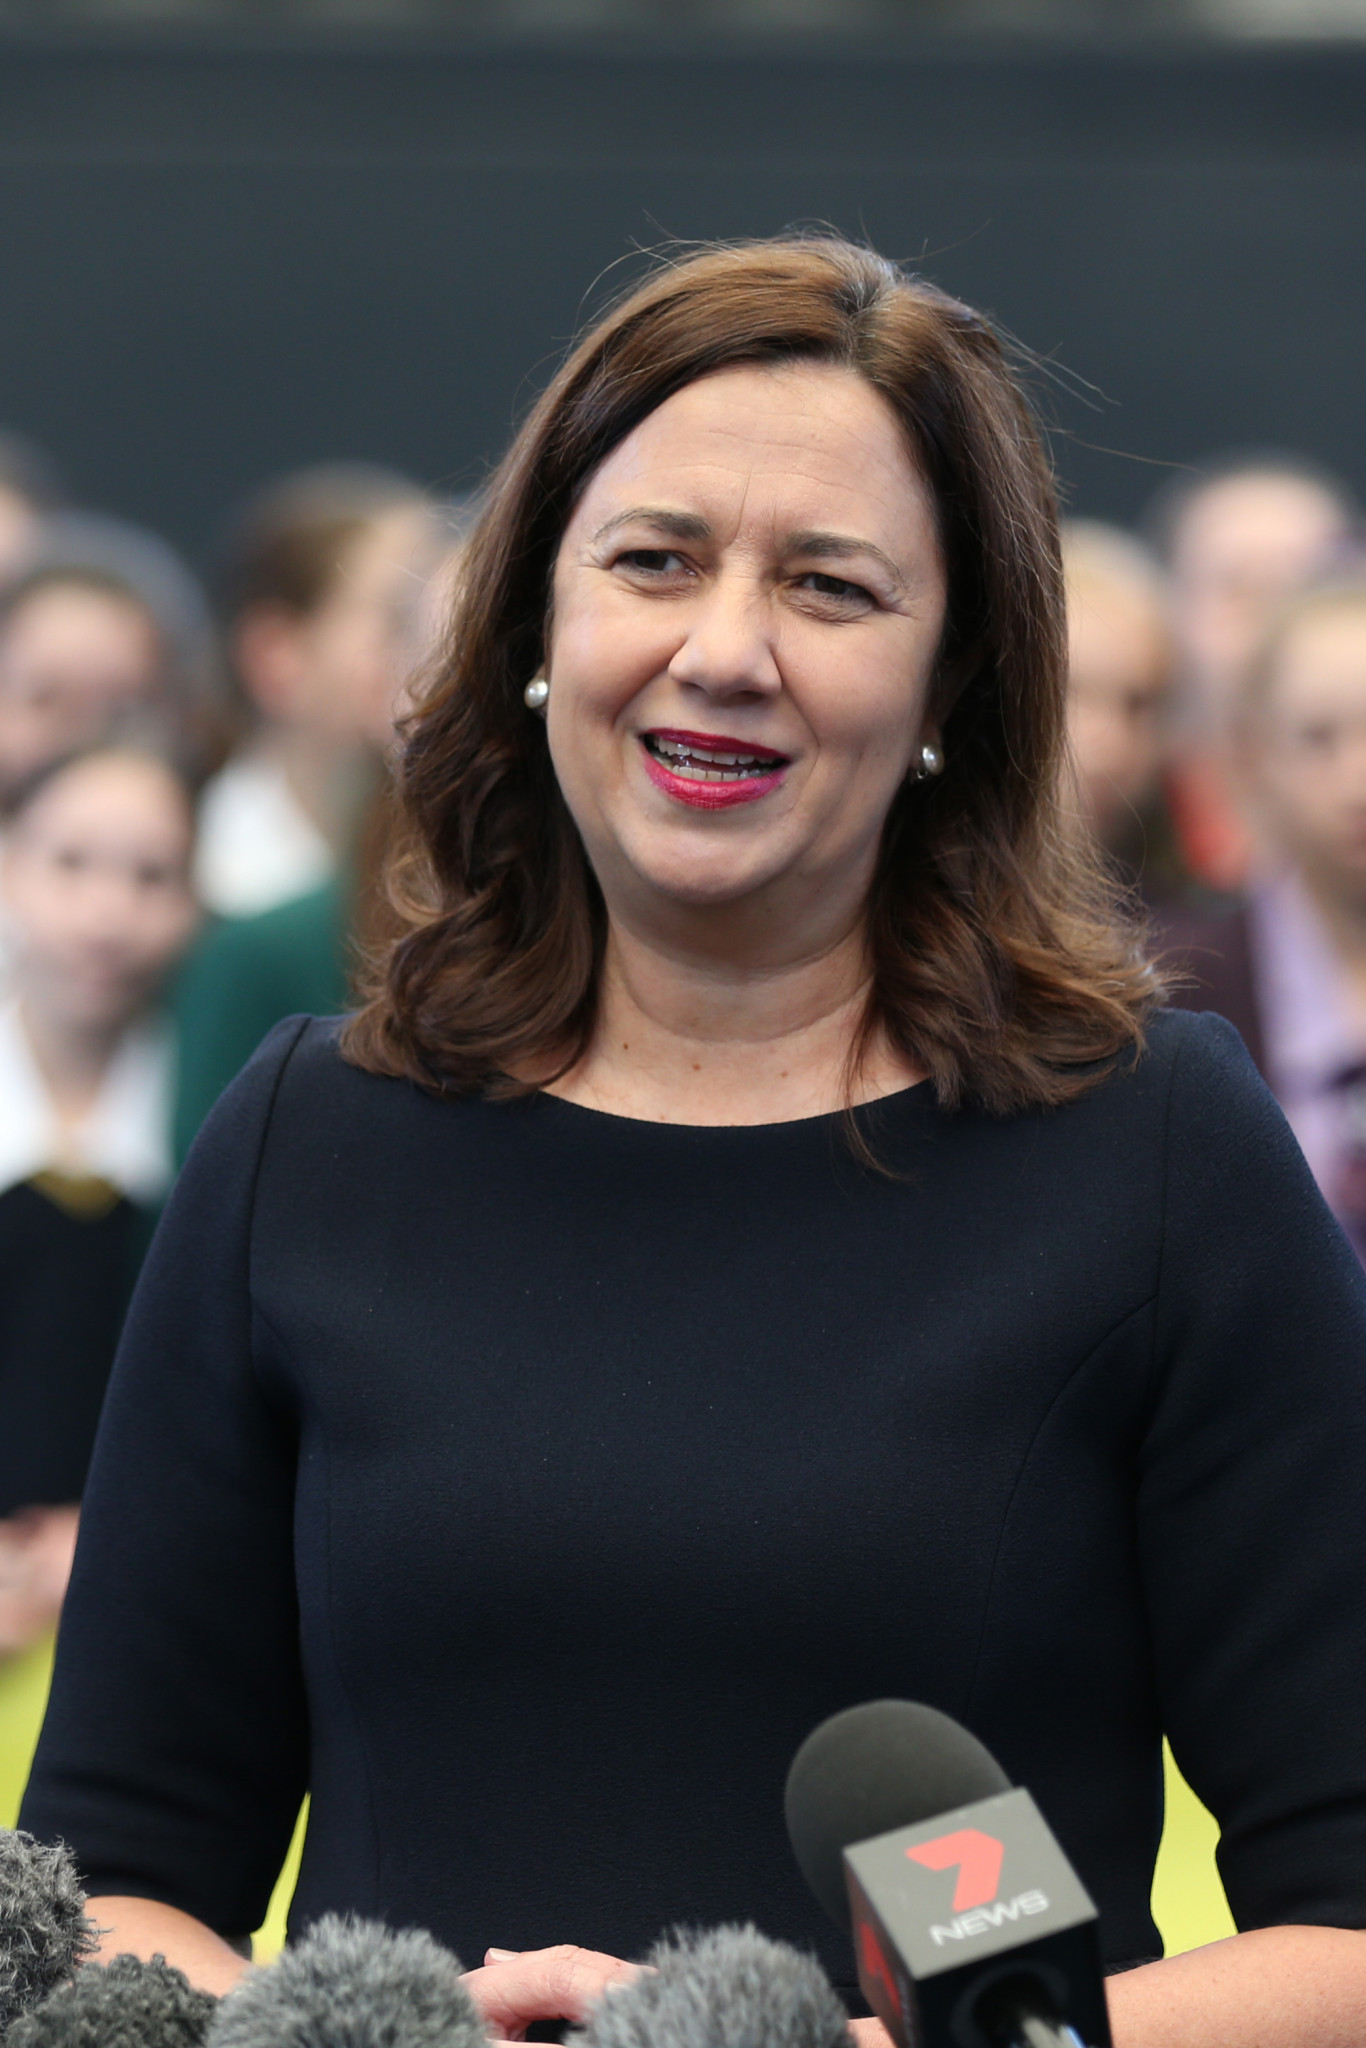 Queensland Premier Annastacia Palaszczuk expects a decision on a bid within months ©Getty Images